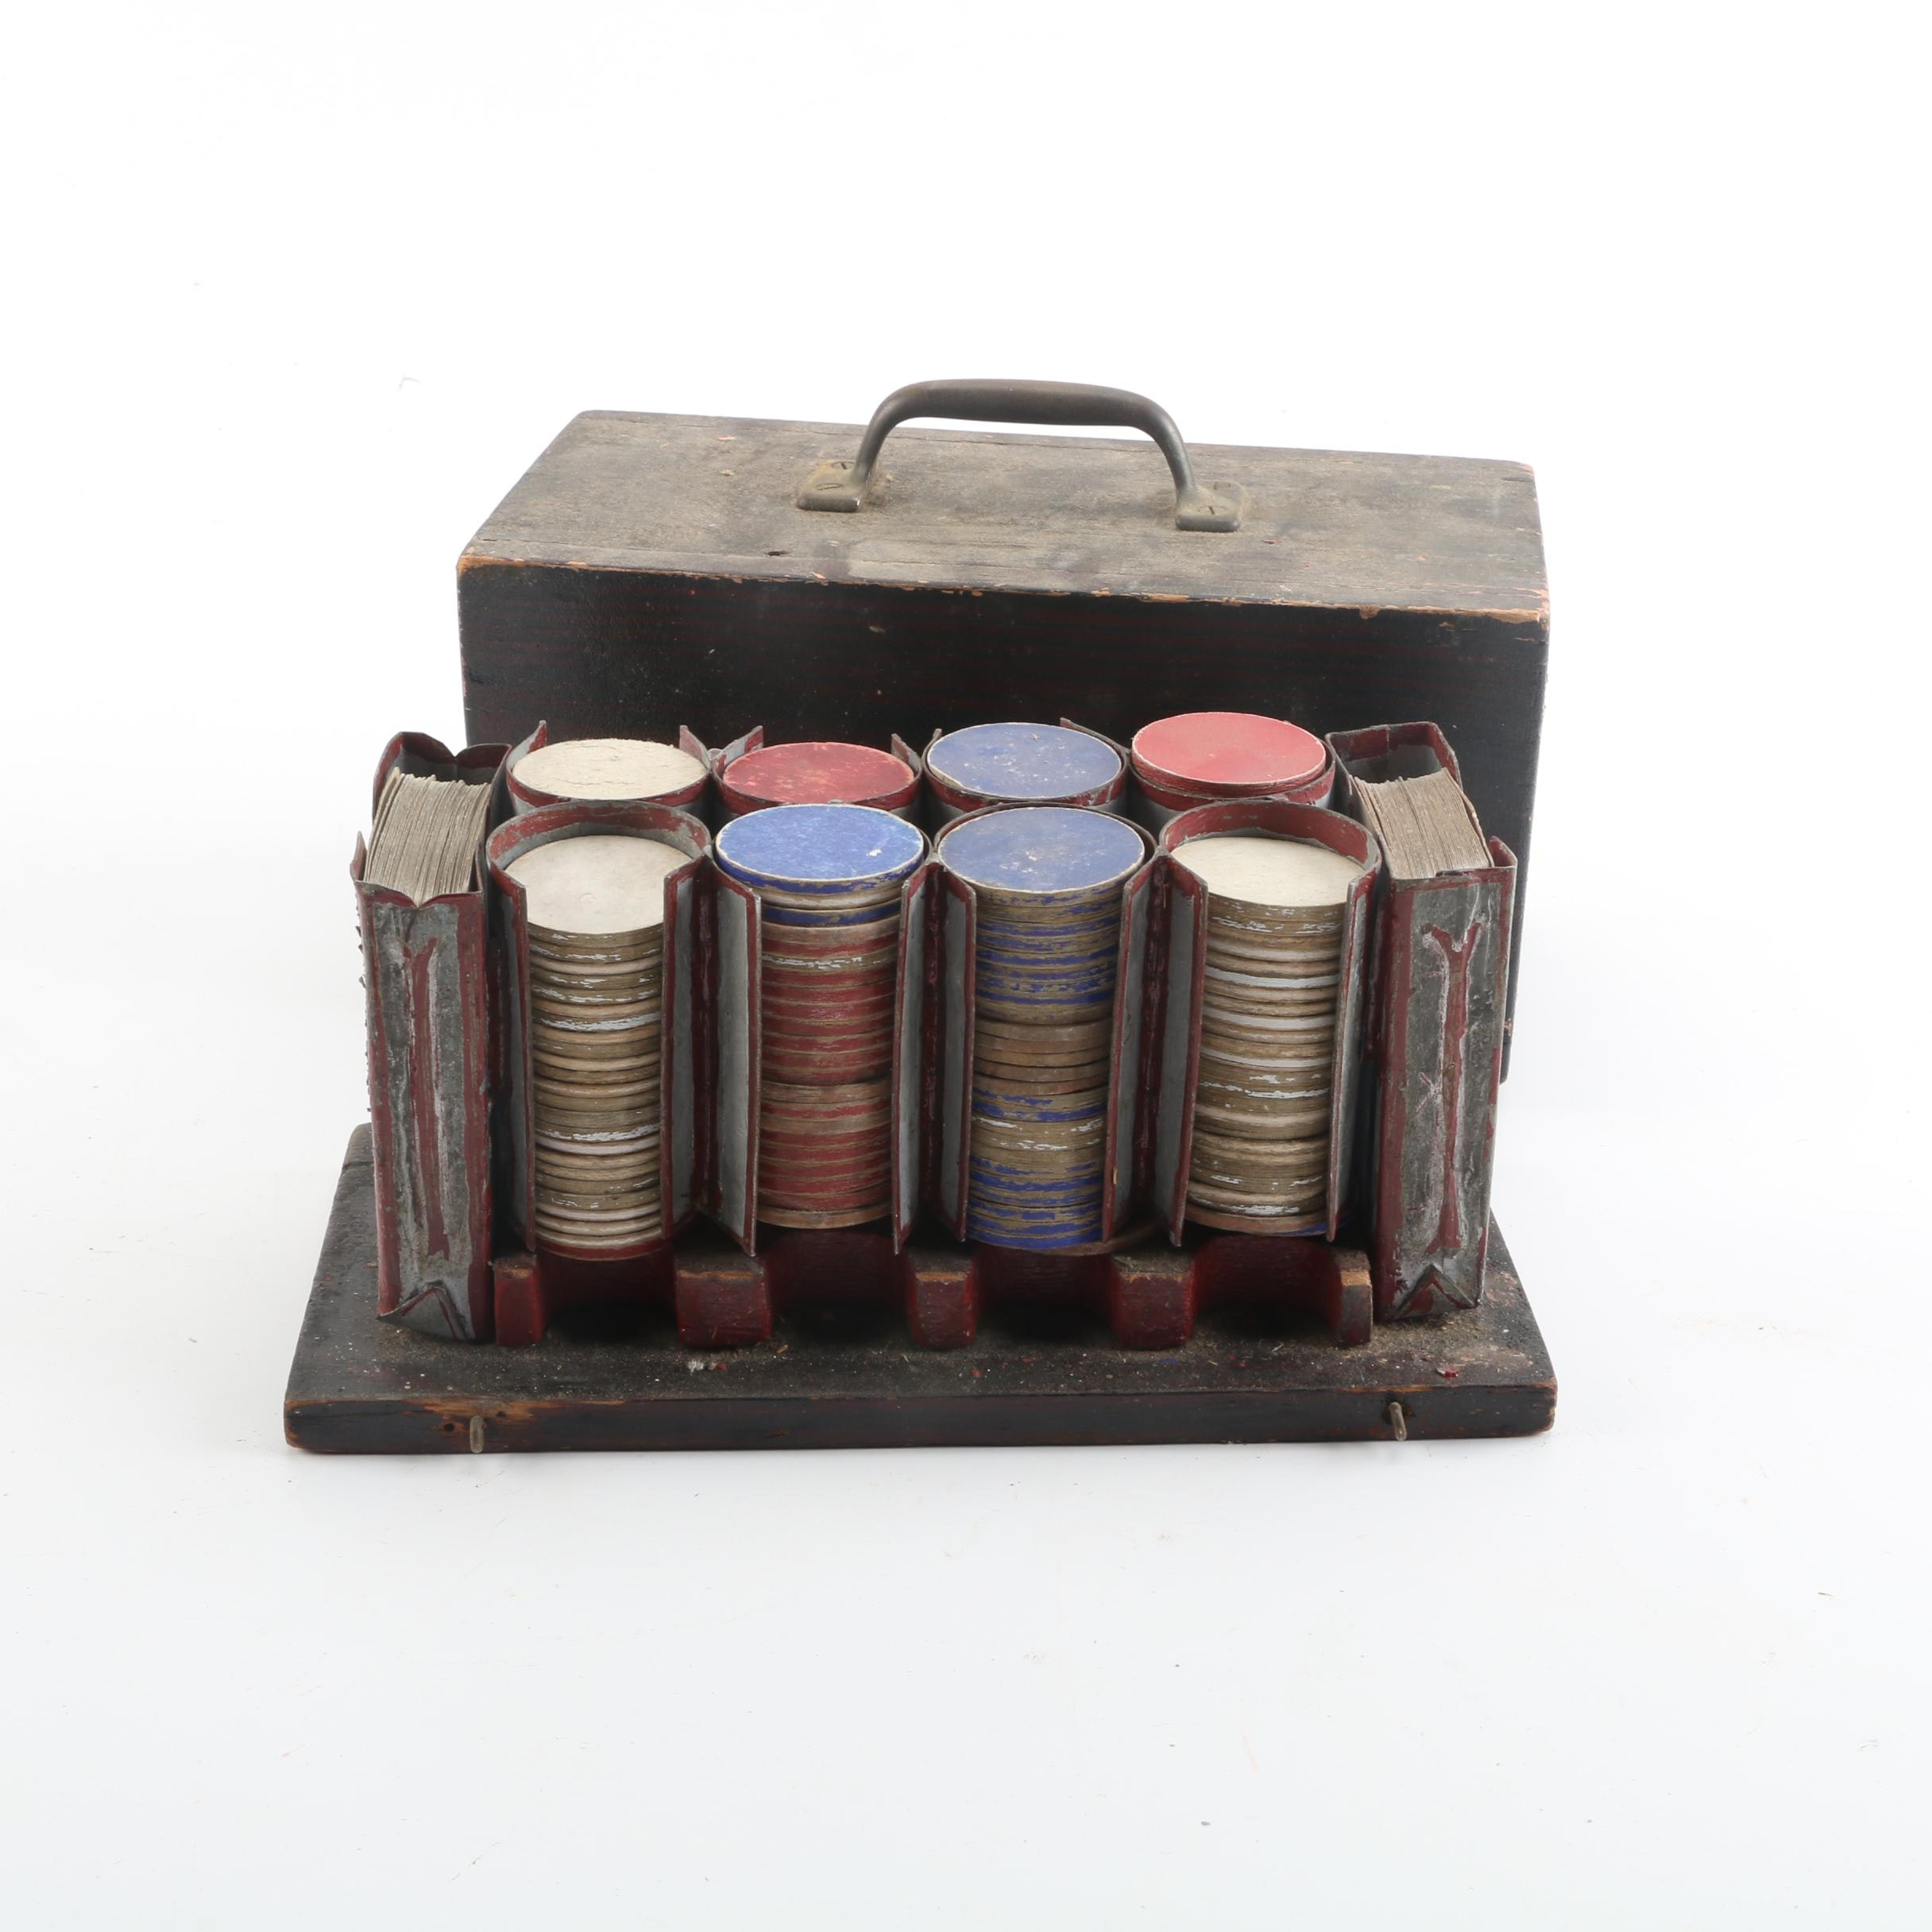 Antique Paper Poker Chips with Card Decks and Wooden Box